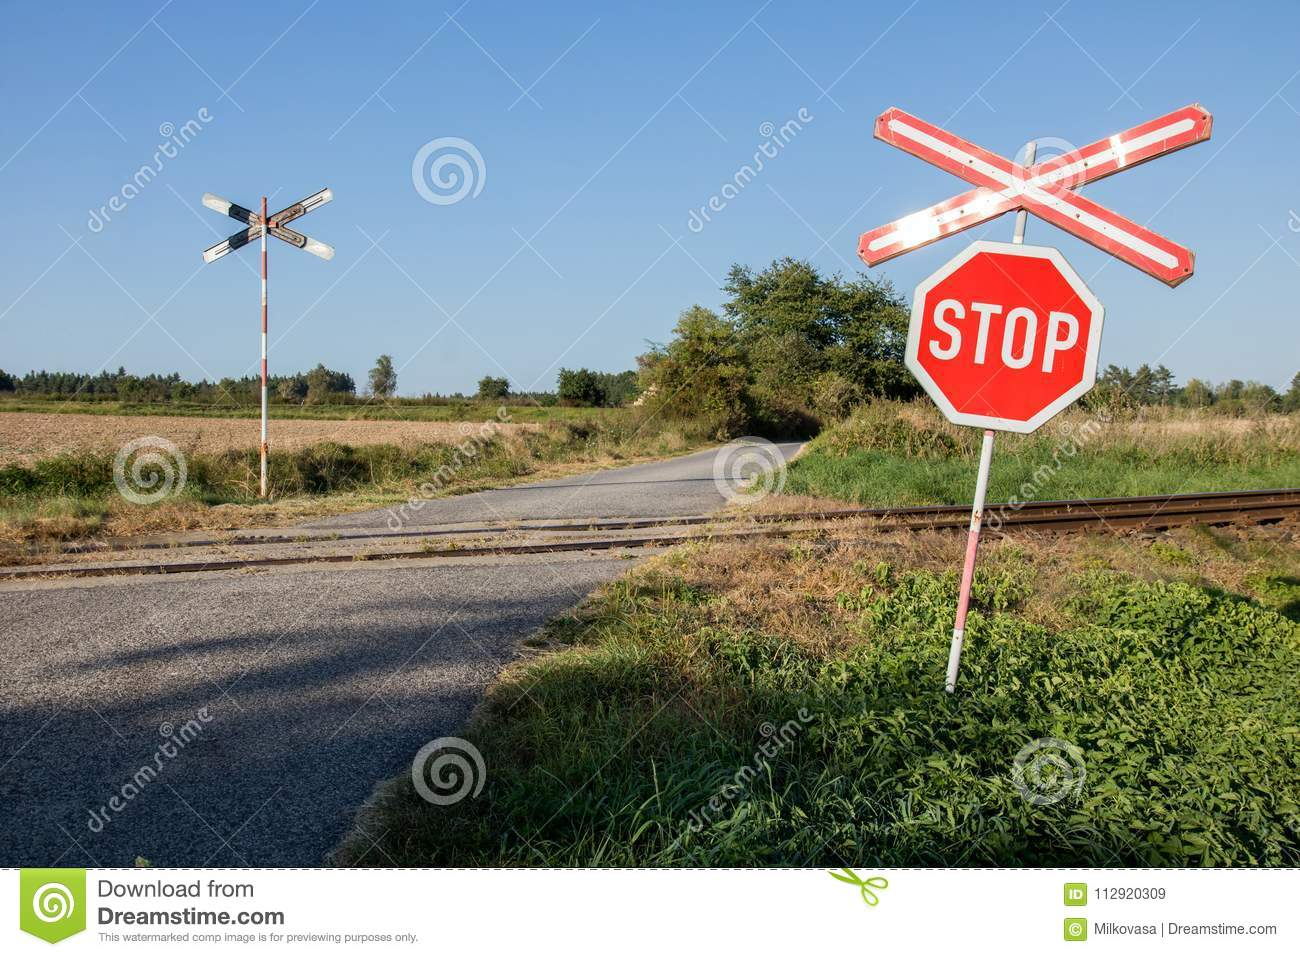 Railroad Crossing Warning Sign  Stock Image - Image of signal